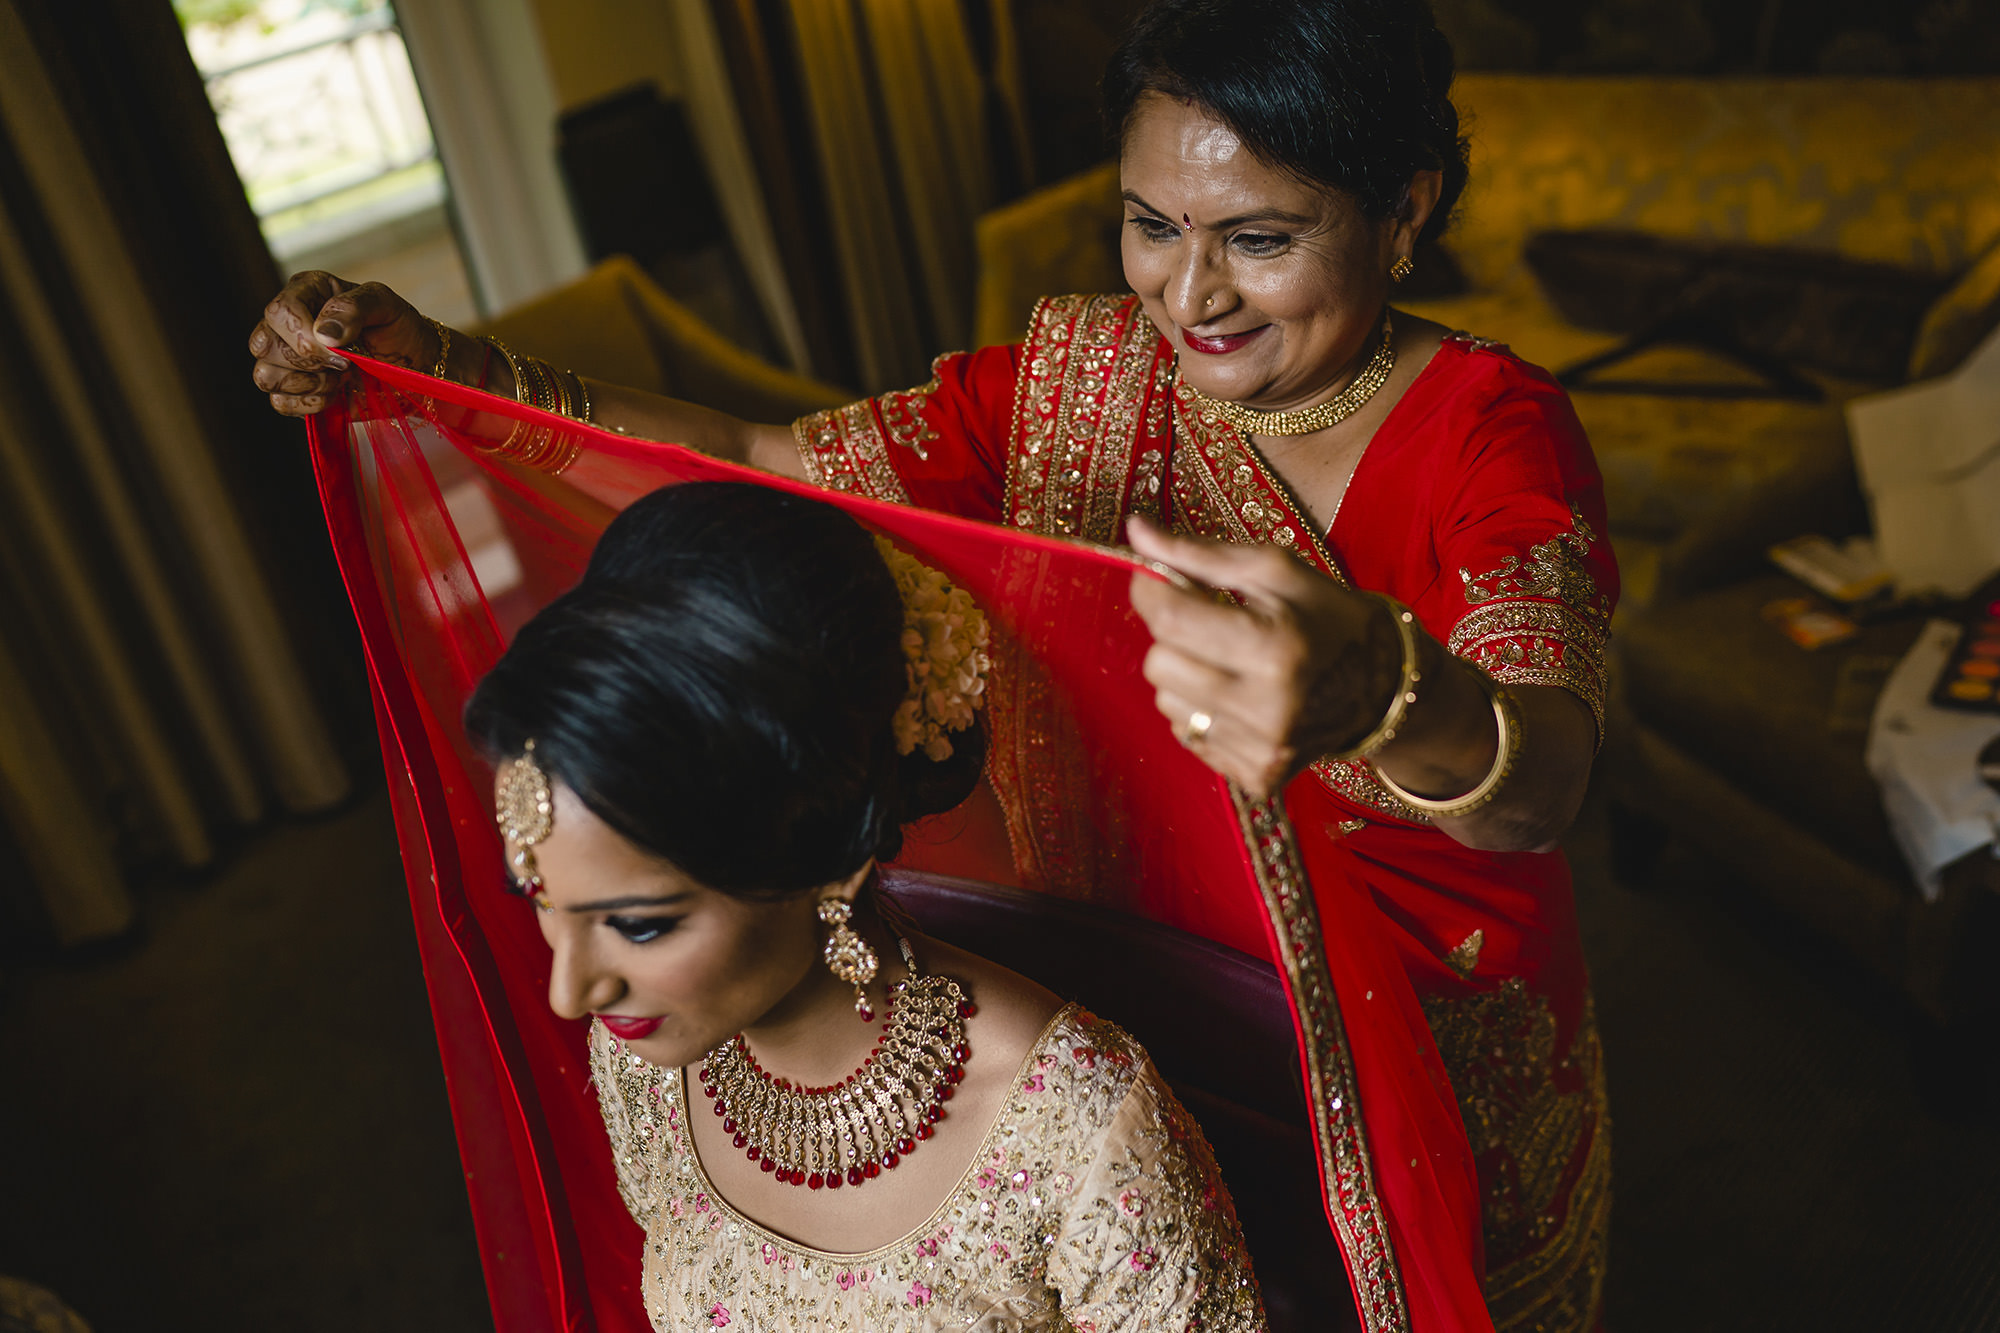 mum placing the dupatta on the brides forehead